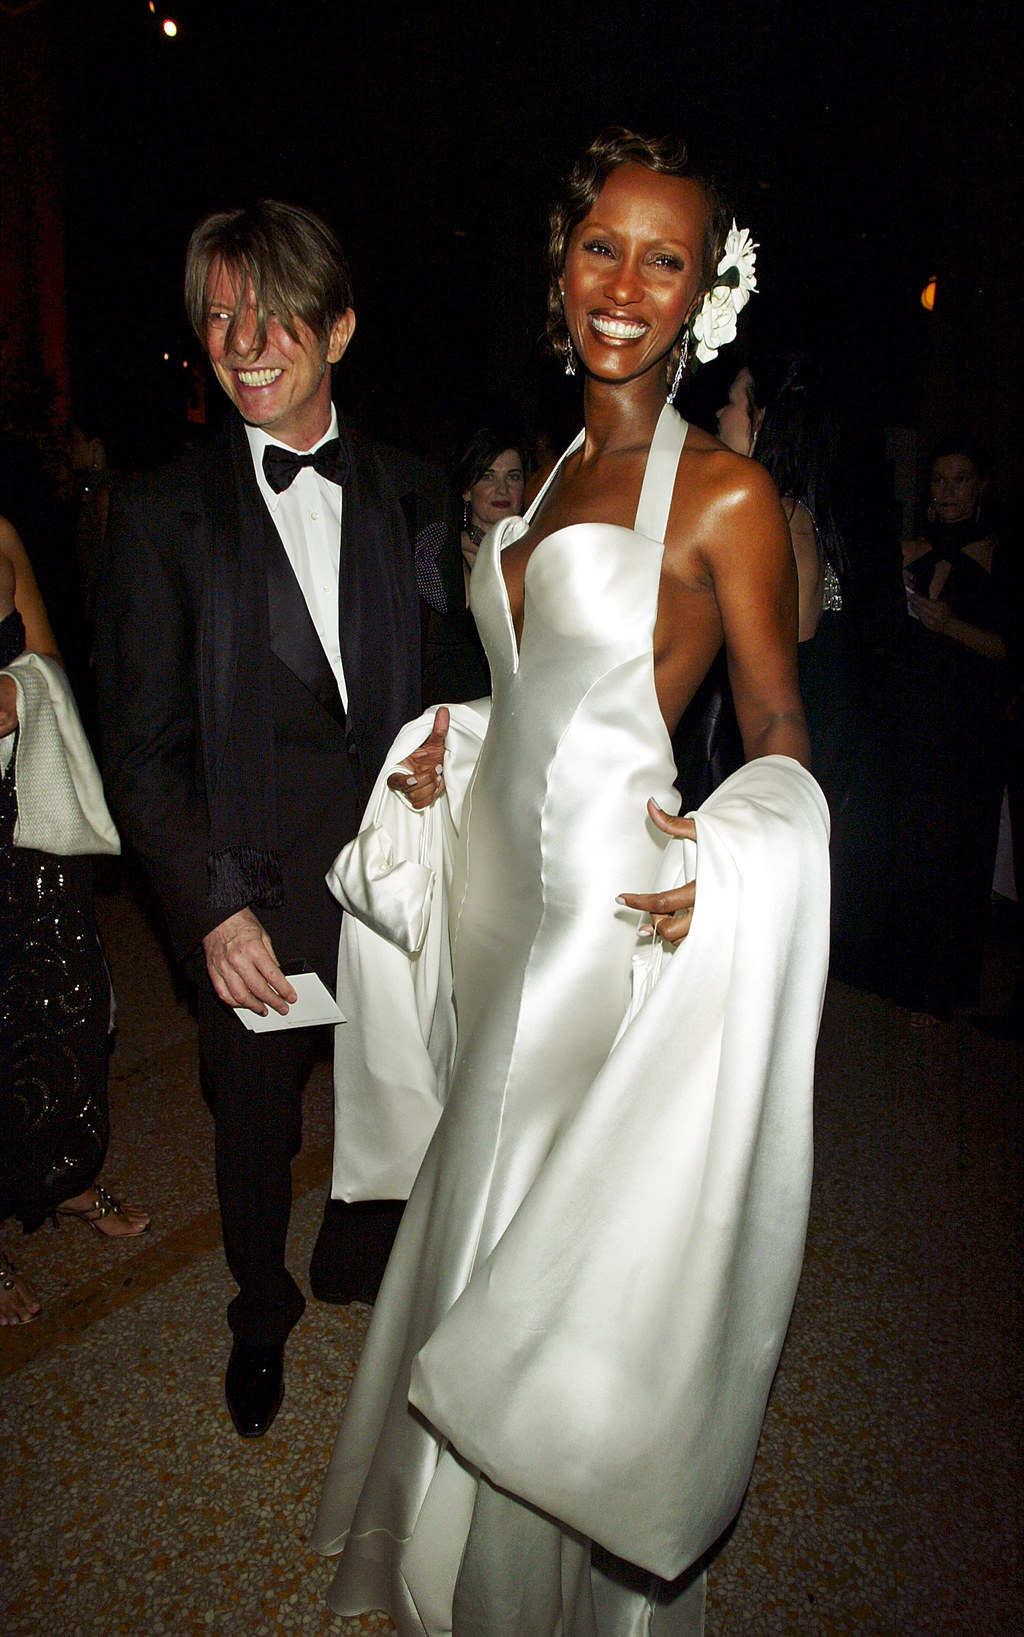 Let's Take A Moment To Appreciate David Bowie And Iman's Love Story